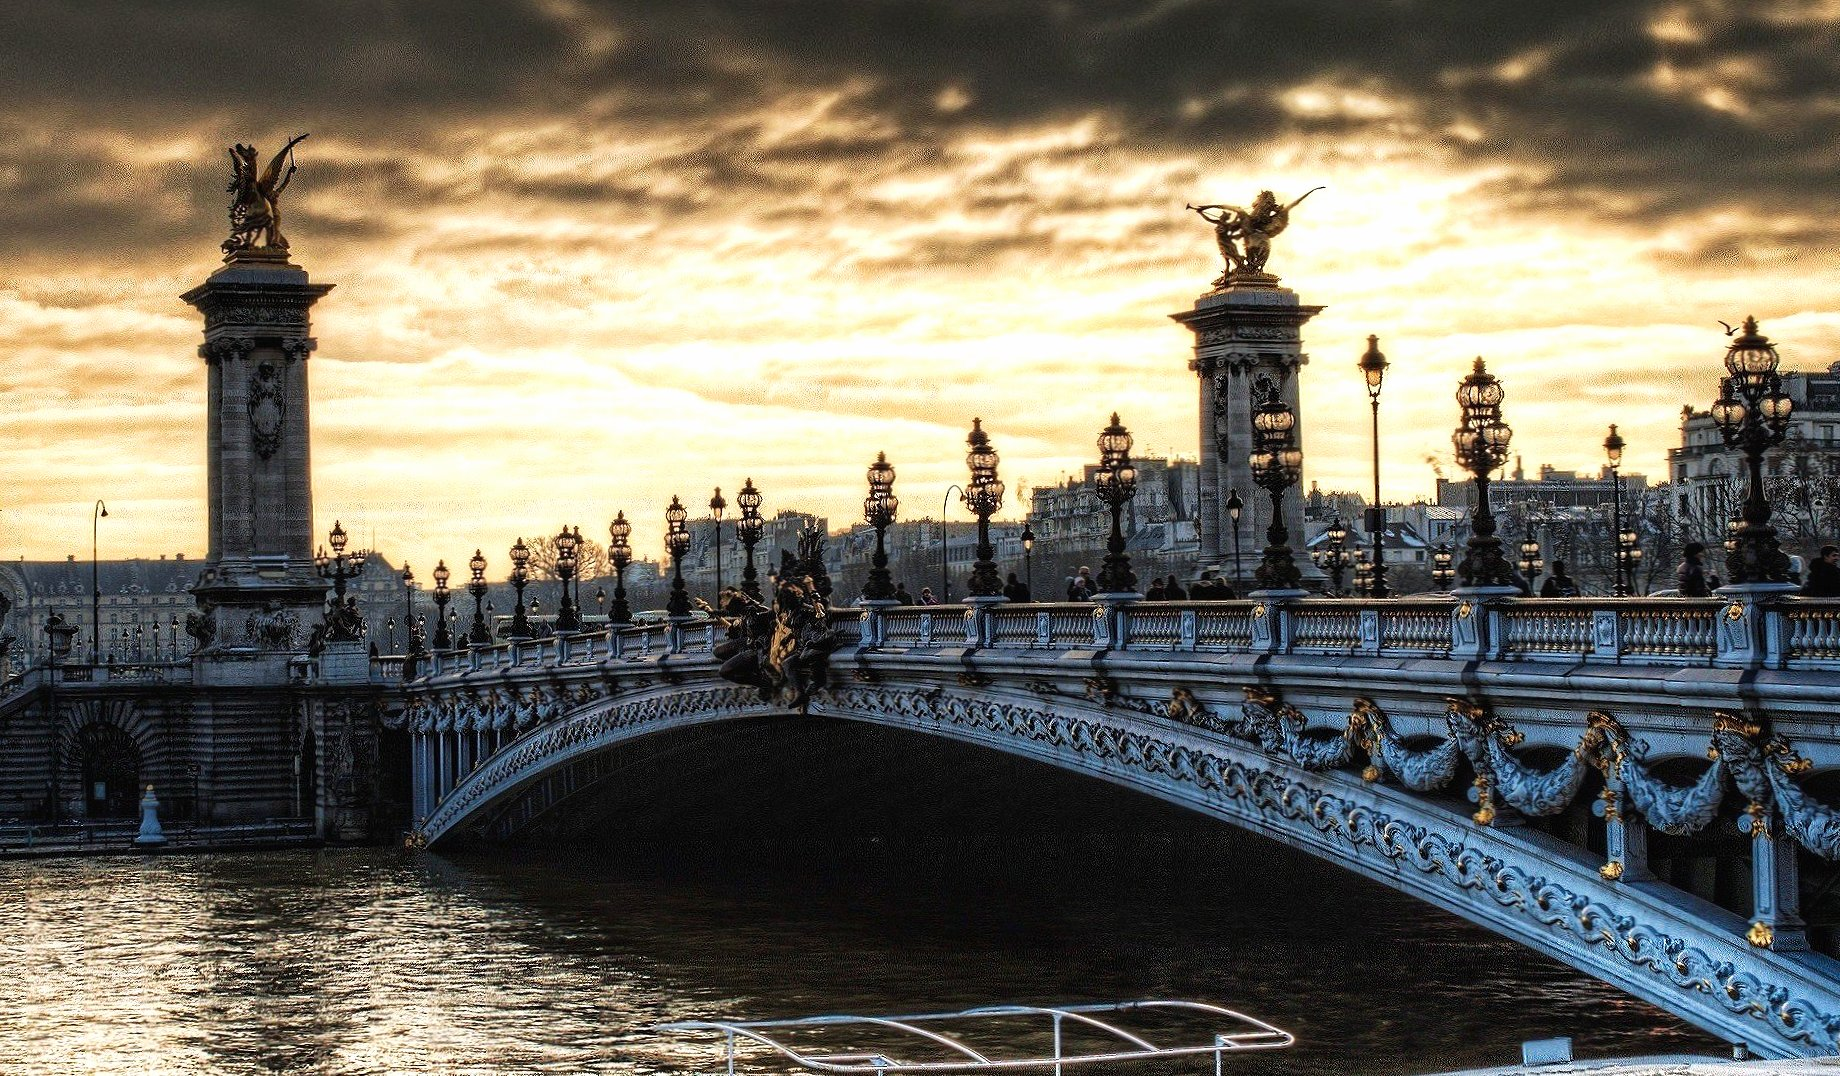 Bridge in paris wallpapers HD quality